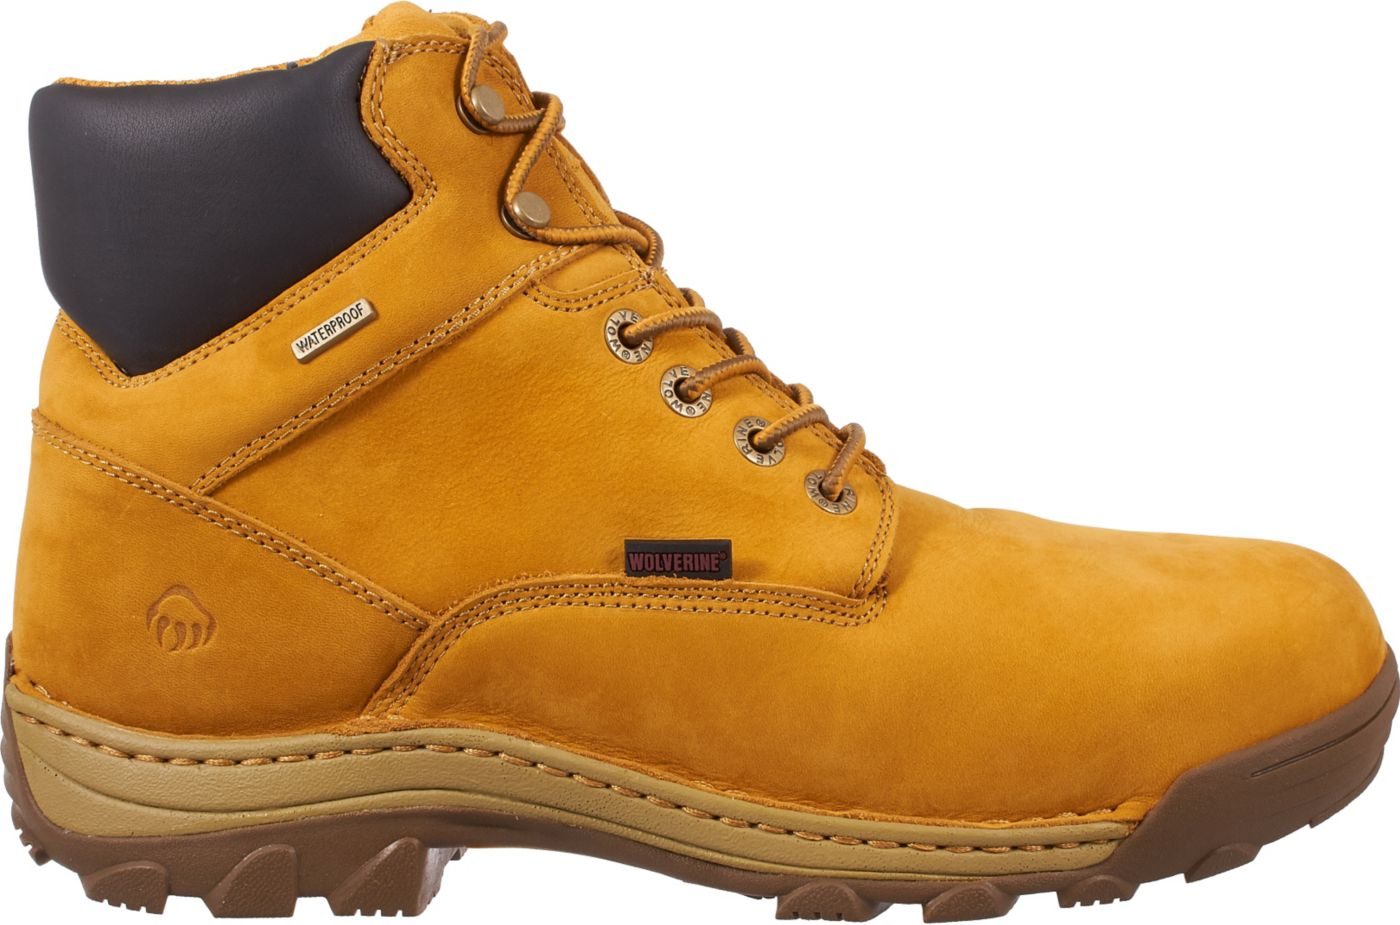 Wolverine Men's Dublin 200g Waterproof Work Boots